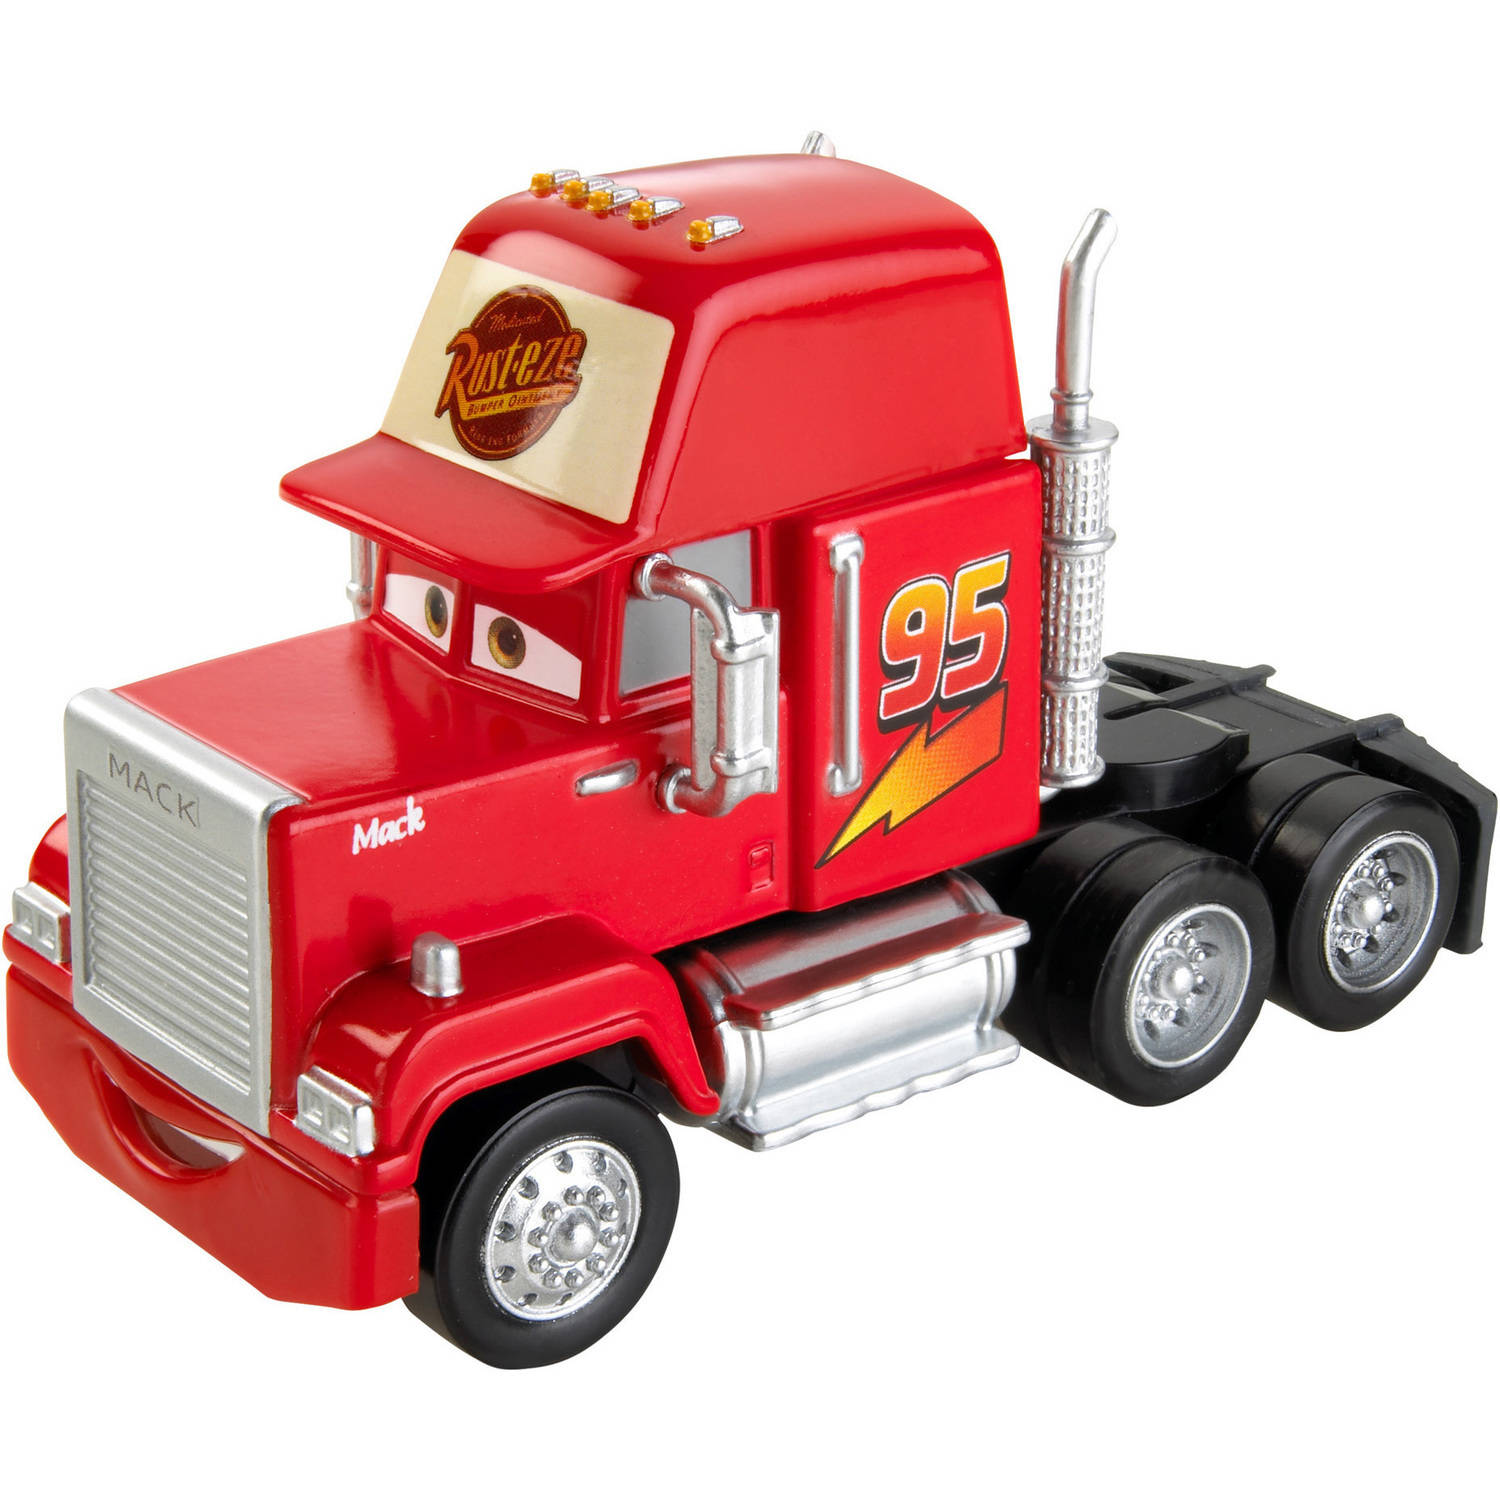 Disney/Pixar Cars Mack Deluxe Die-Cast Vehicle